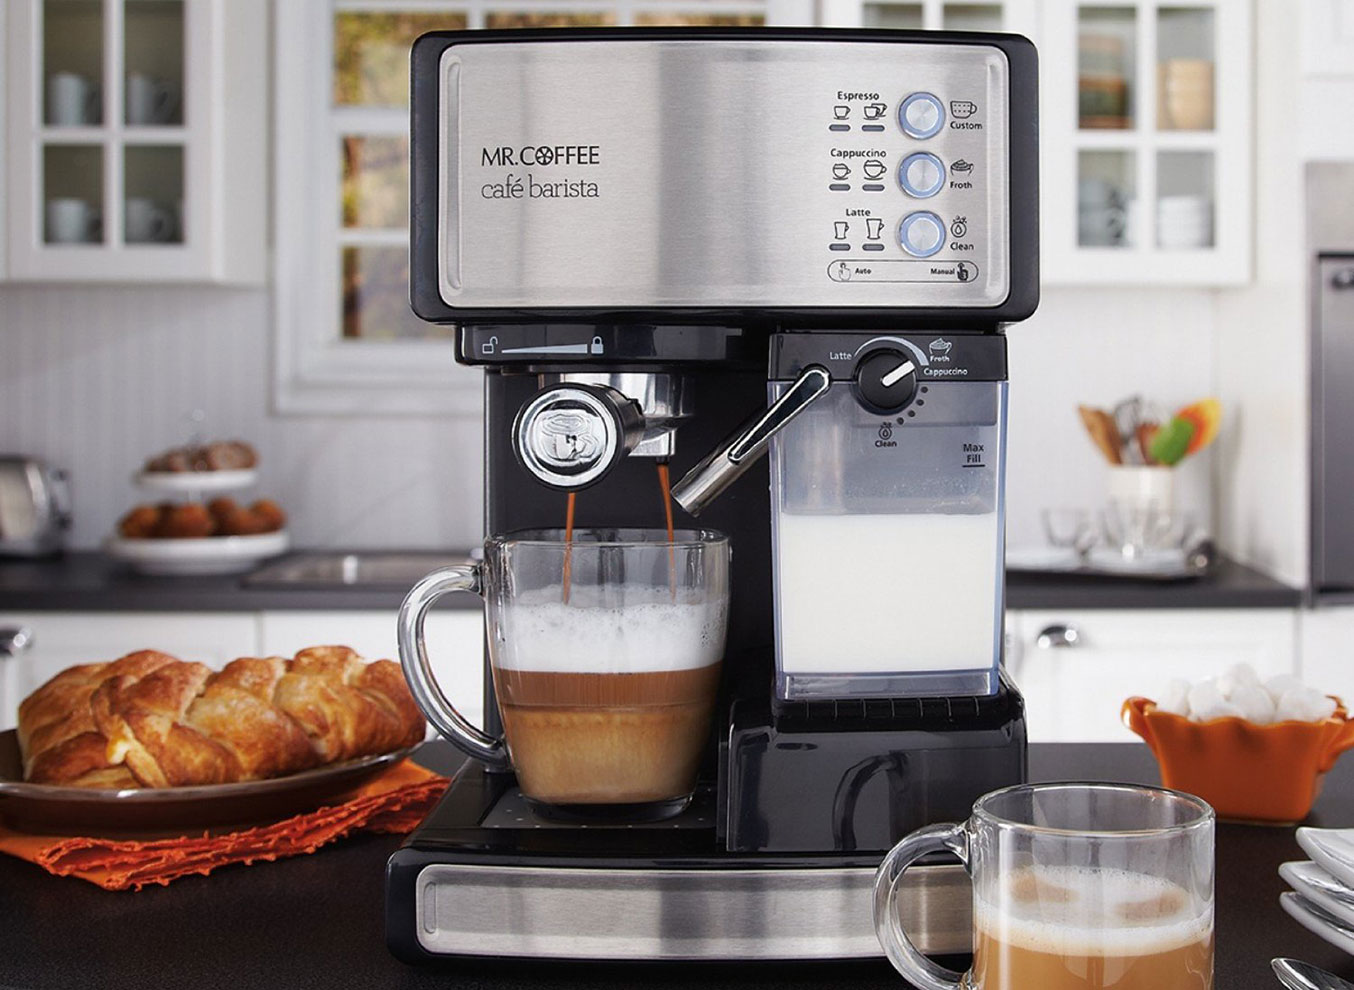 Mr. Coffee Cafe Barista Espresso Maker | Best Espresso Machines